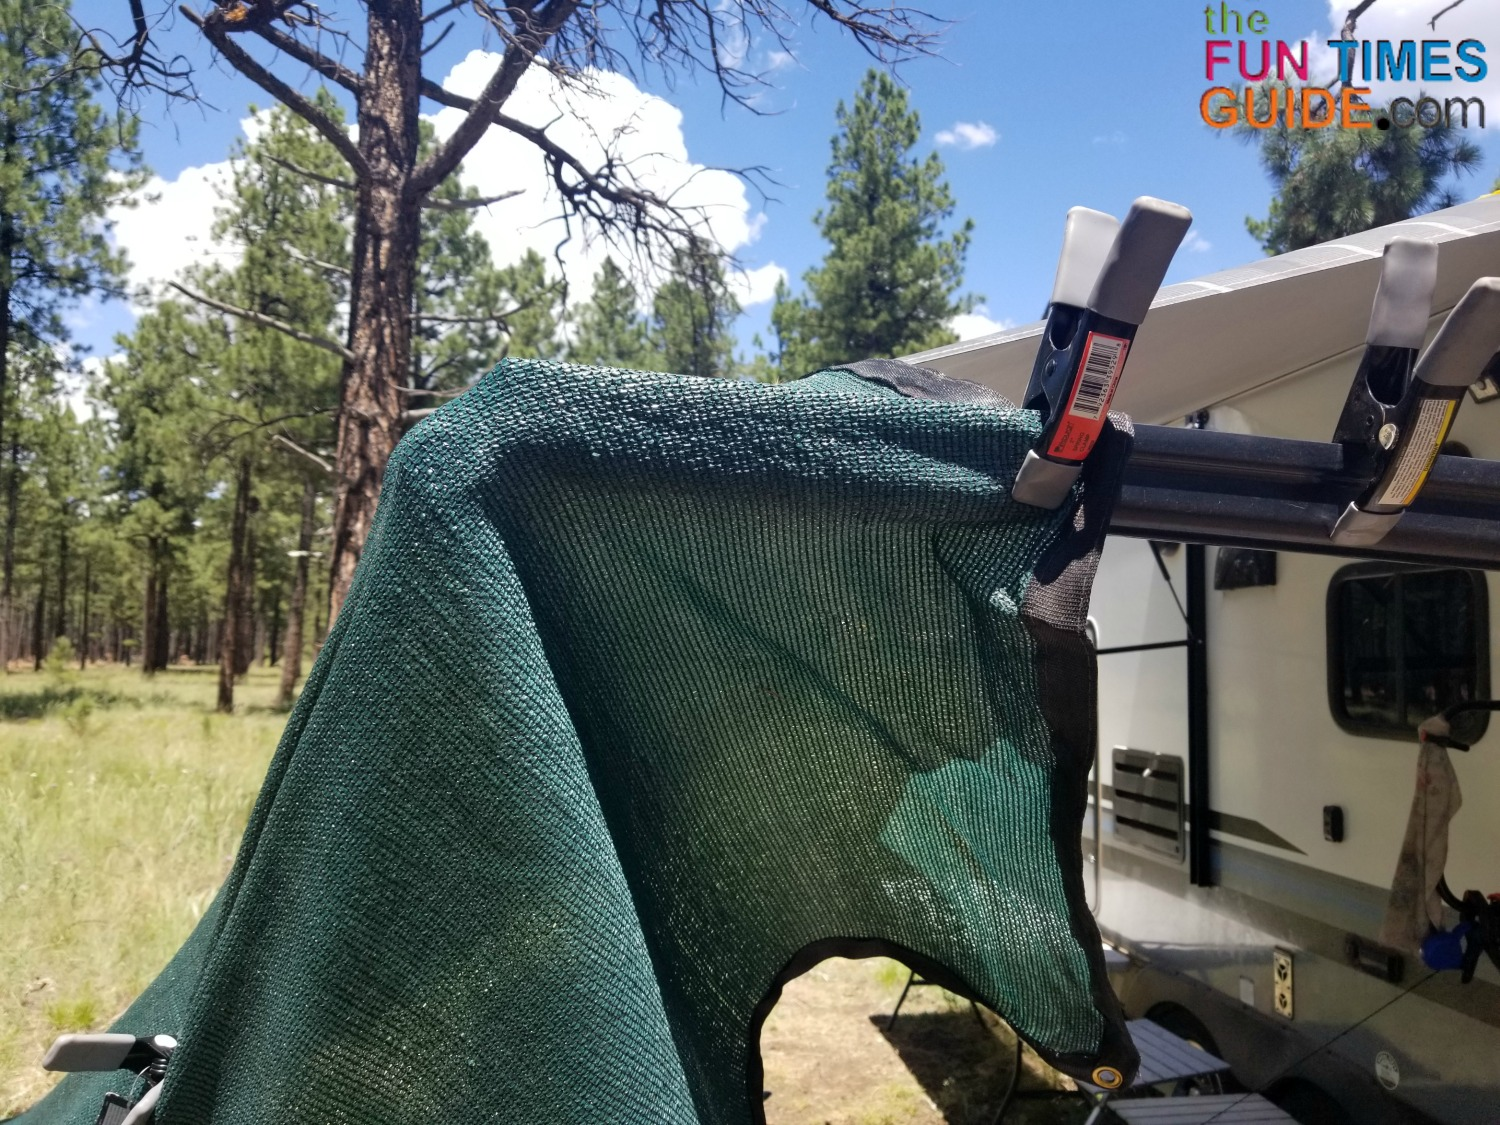 DIY RV Awning Shade Canopy - Photos + Video To Make Your Own